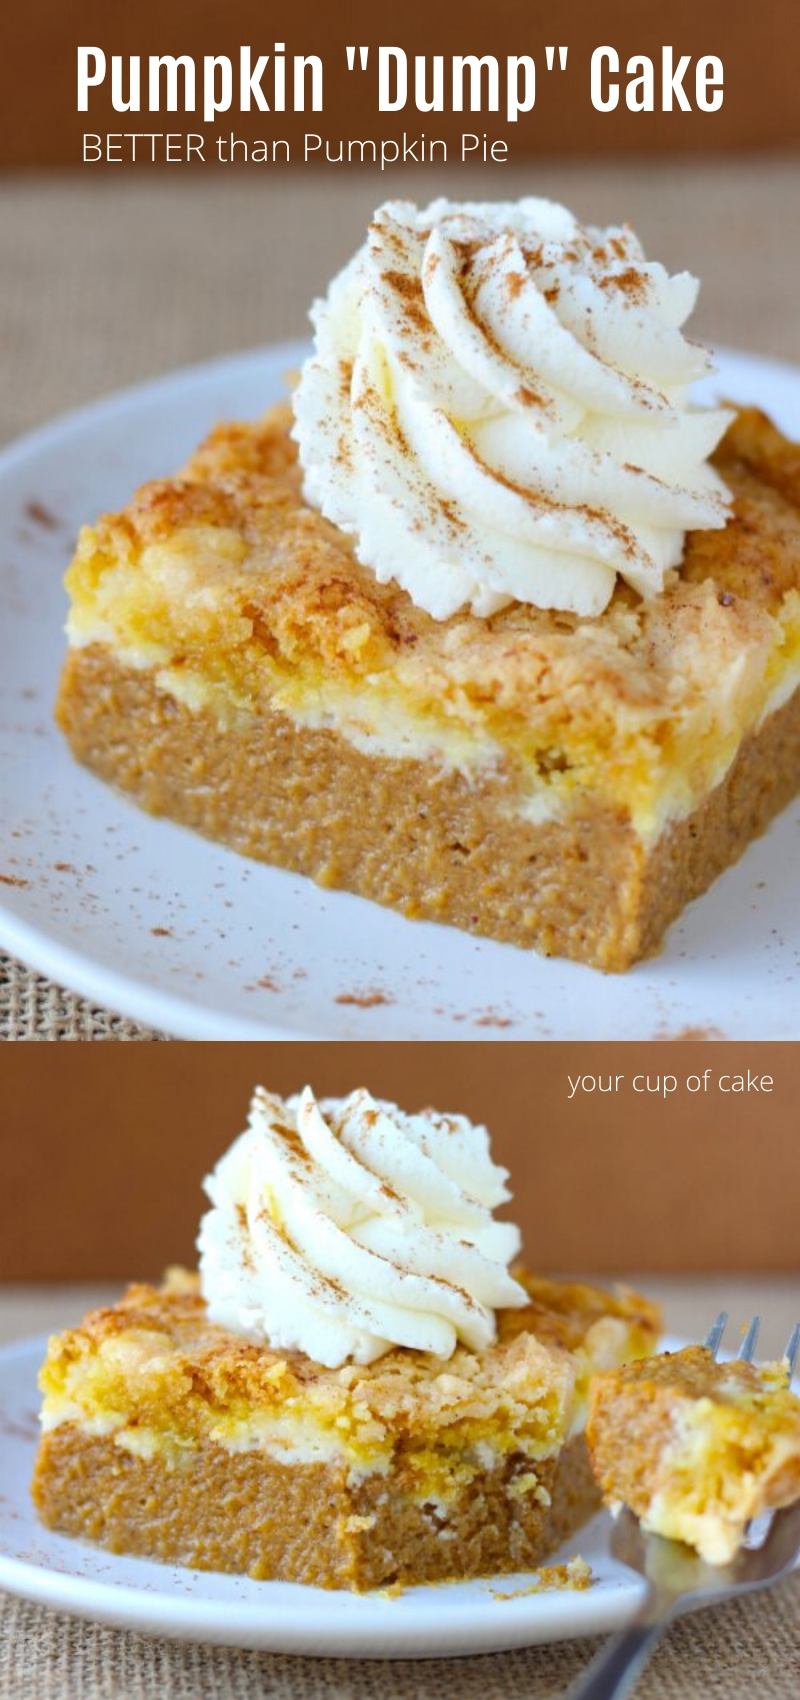 BETTER than pumpkin pie! This Pumpkin Dump Cake has a cream cheese swirl and takes just a few minutes to make! No fussing with crust for this Thanksgiving dessert